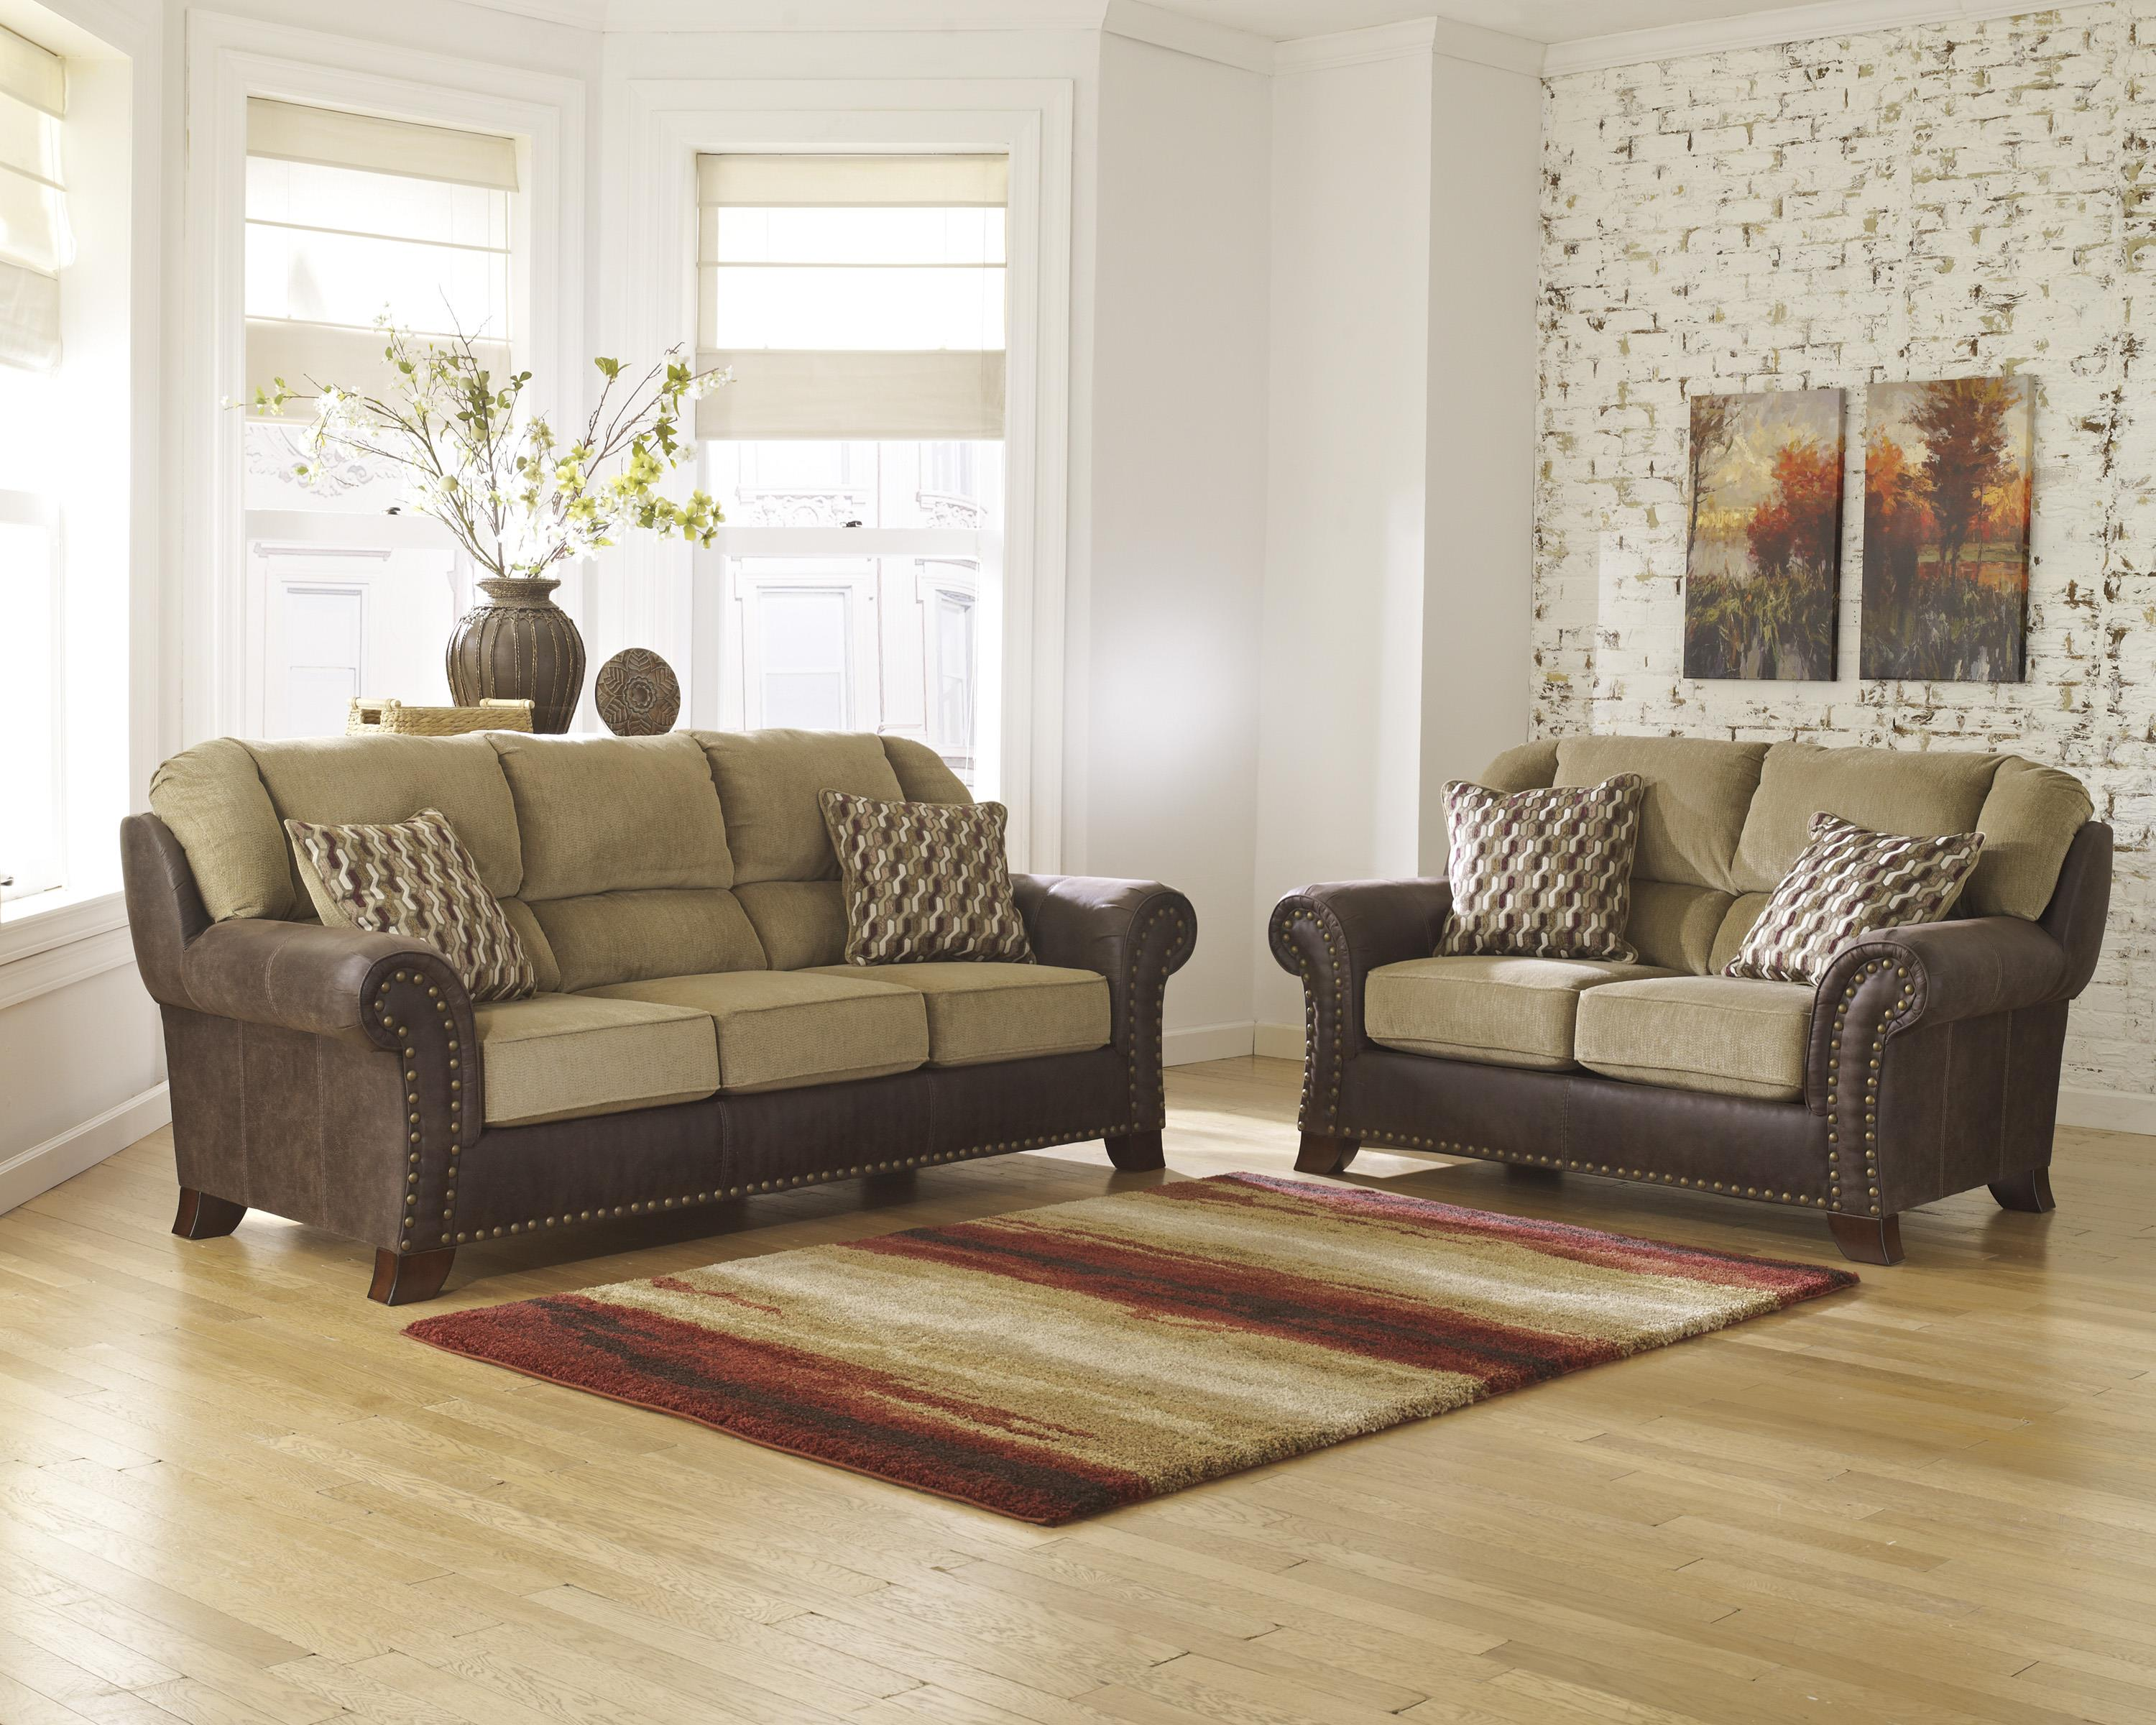 Peachy Design Rent A Center Living Room Sets Stunning Decoration